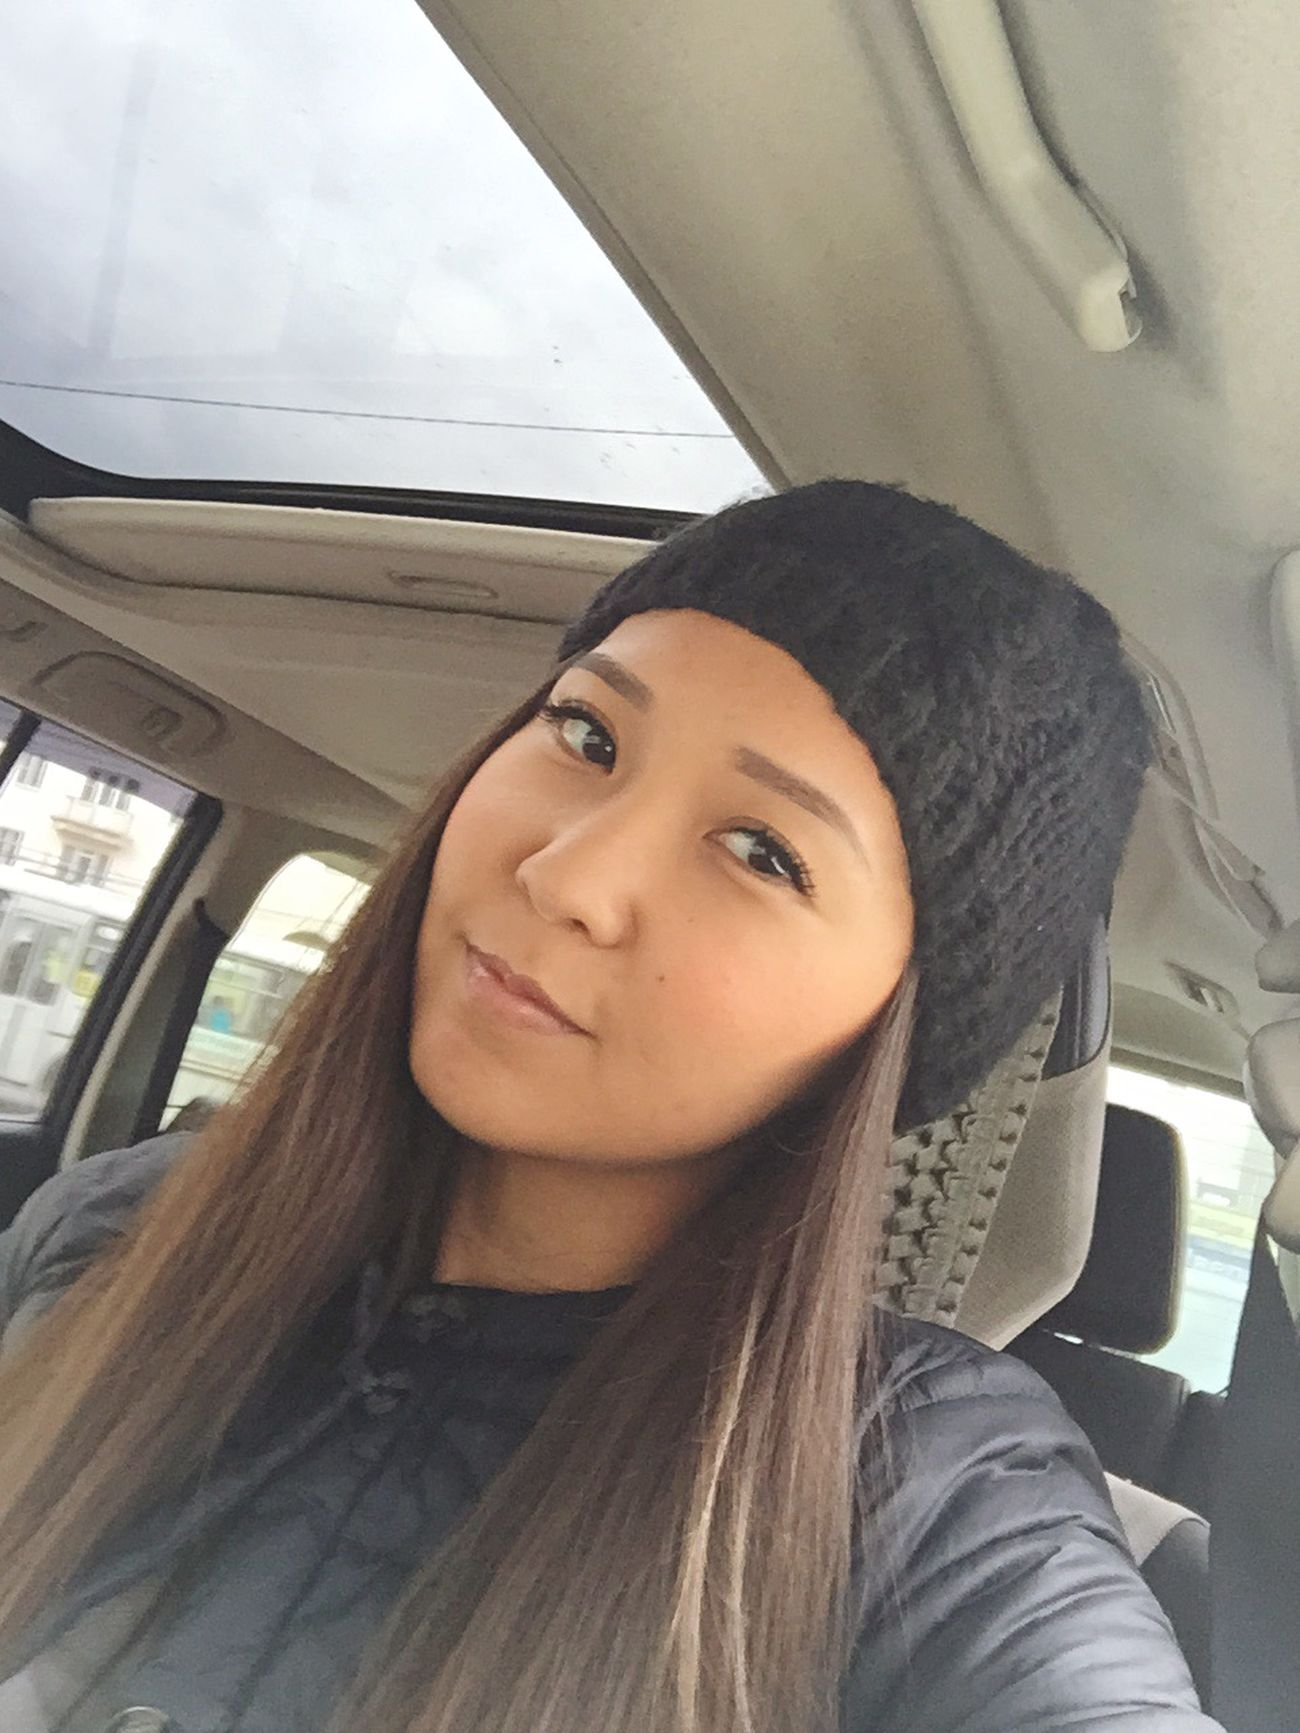 Me Girl Nice Driving My Passion In The Car Mitsubishi Pajero My Life I Like Enjoying Life